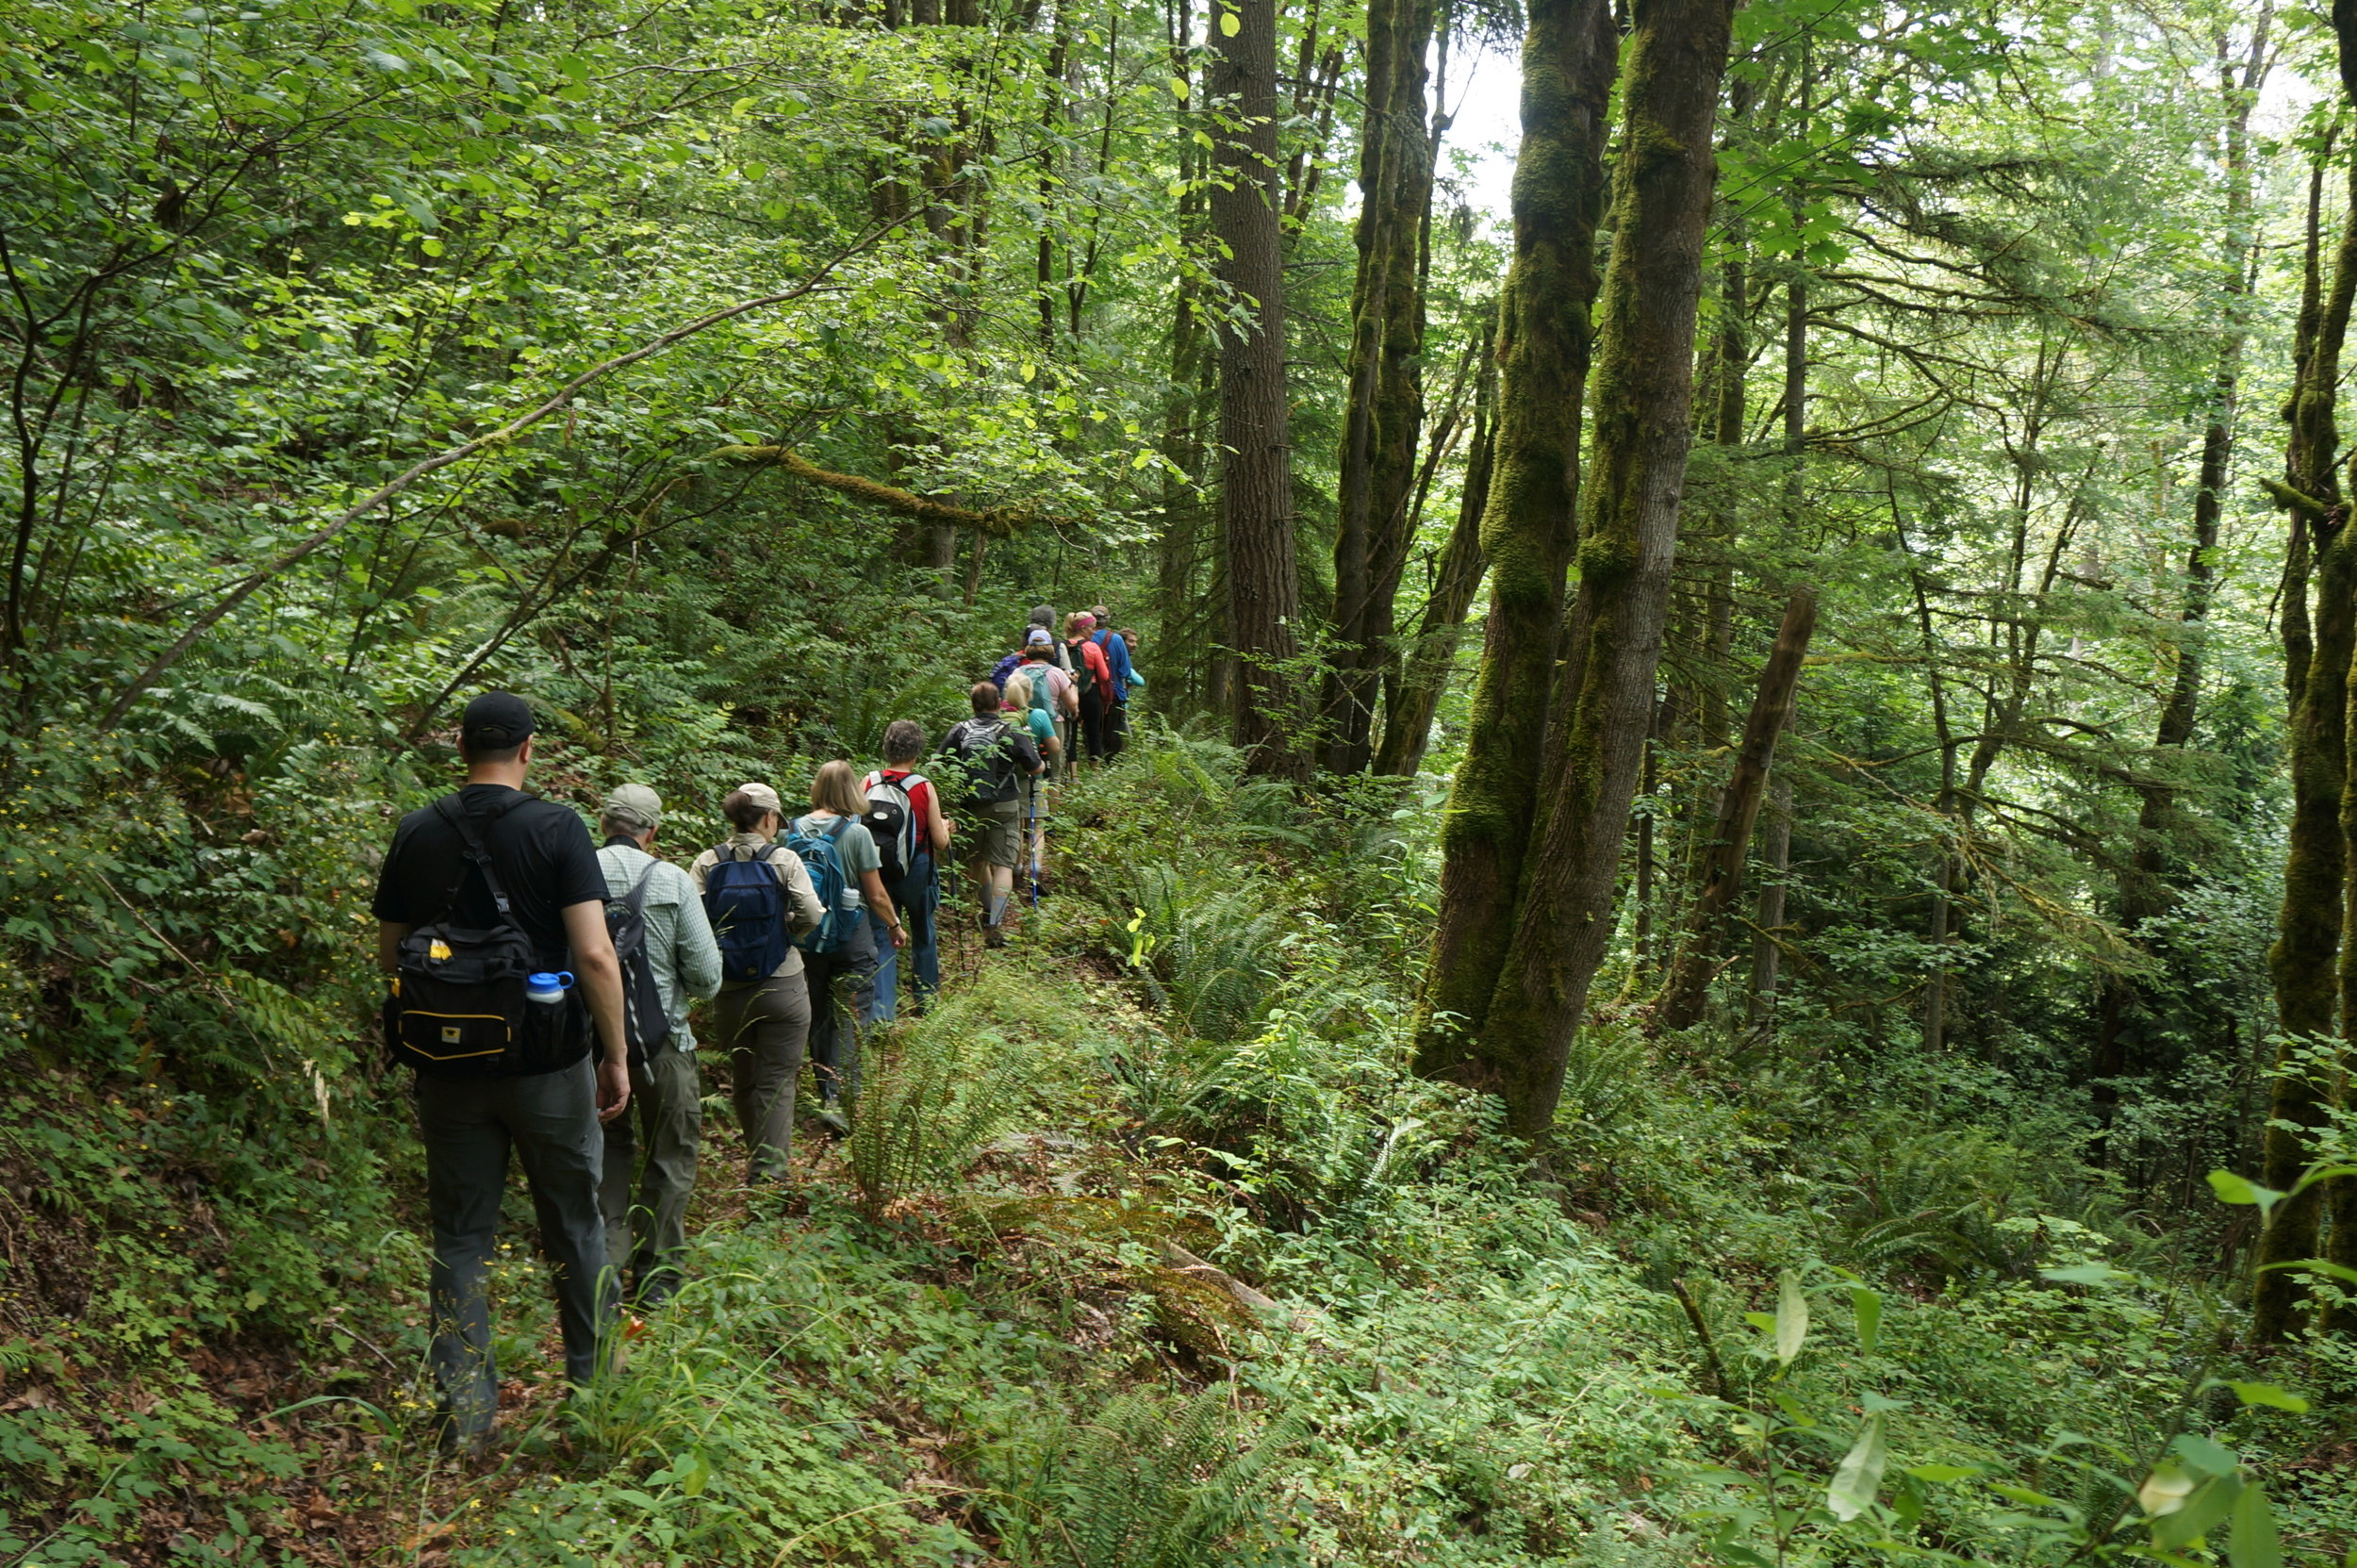 Hikers enjoying the lush surroundings of Squak Mountain on the way to see Mark's Wall.